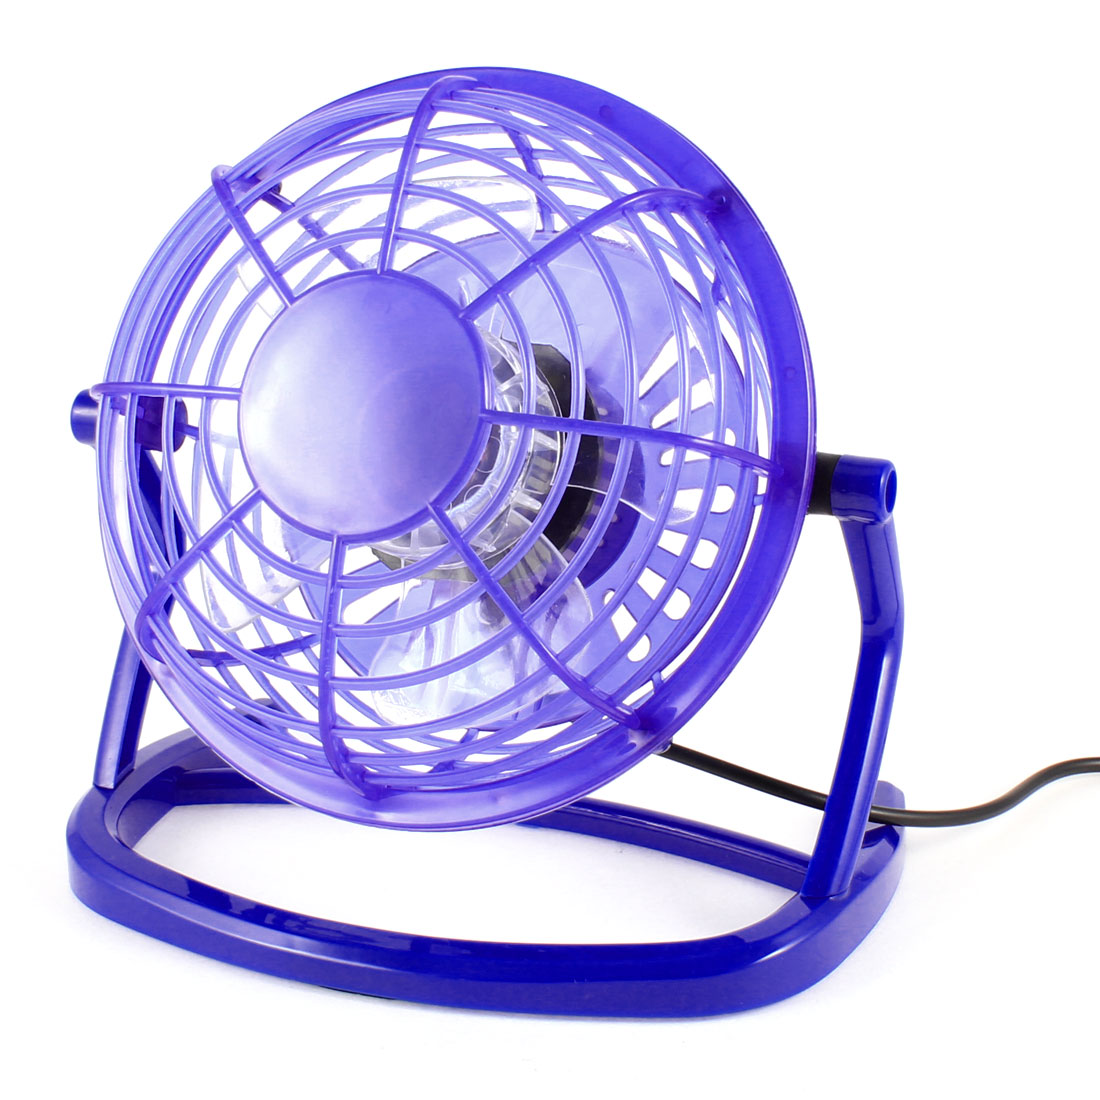 Adjustable Angle Tabletop Blue Retro USB Cooling Mini Fan